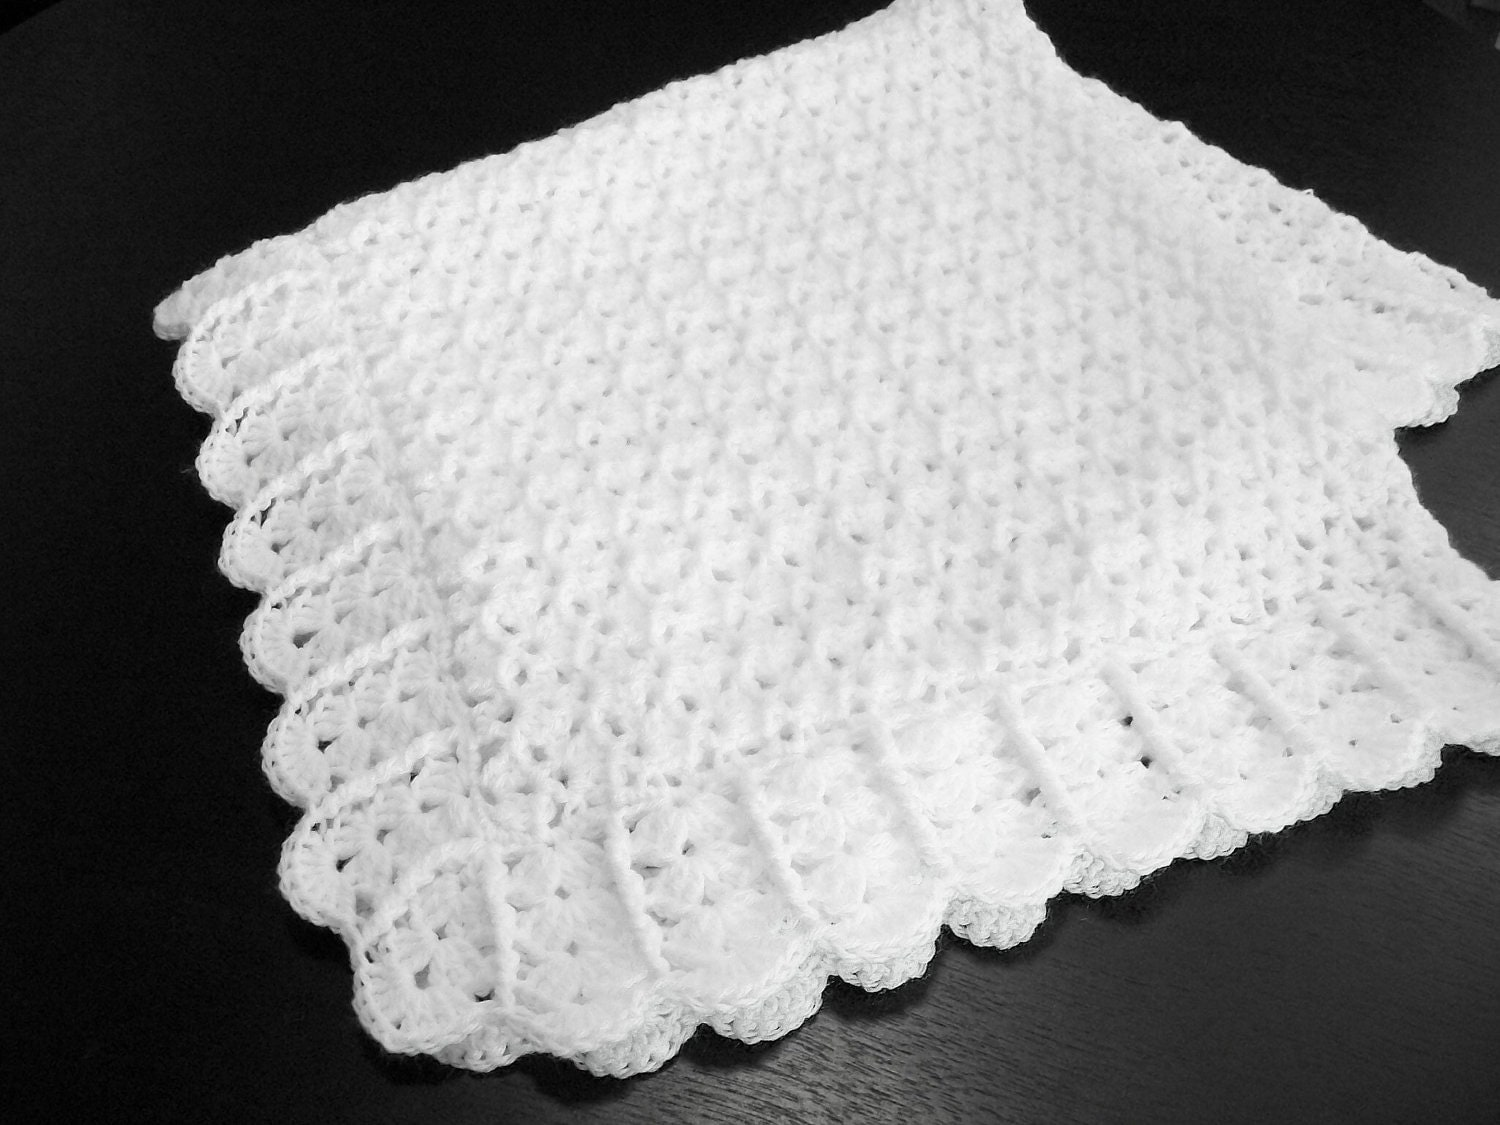 Free Knitting Patterns For Baby Christening Blankets : Crochet White Baby Blanket Afghan Christening by ...